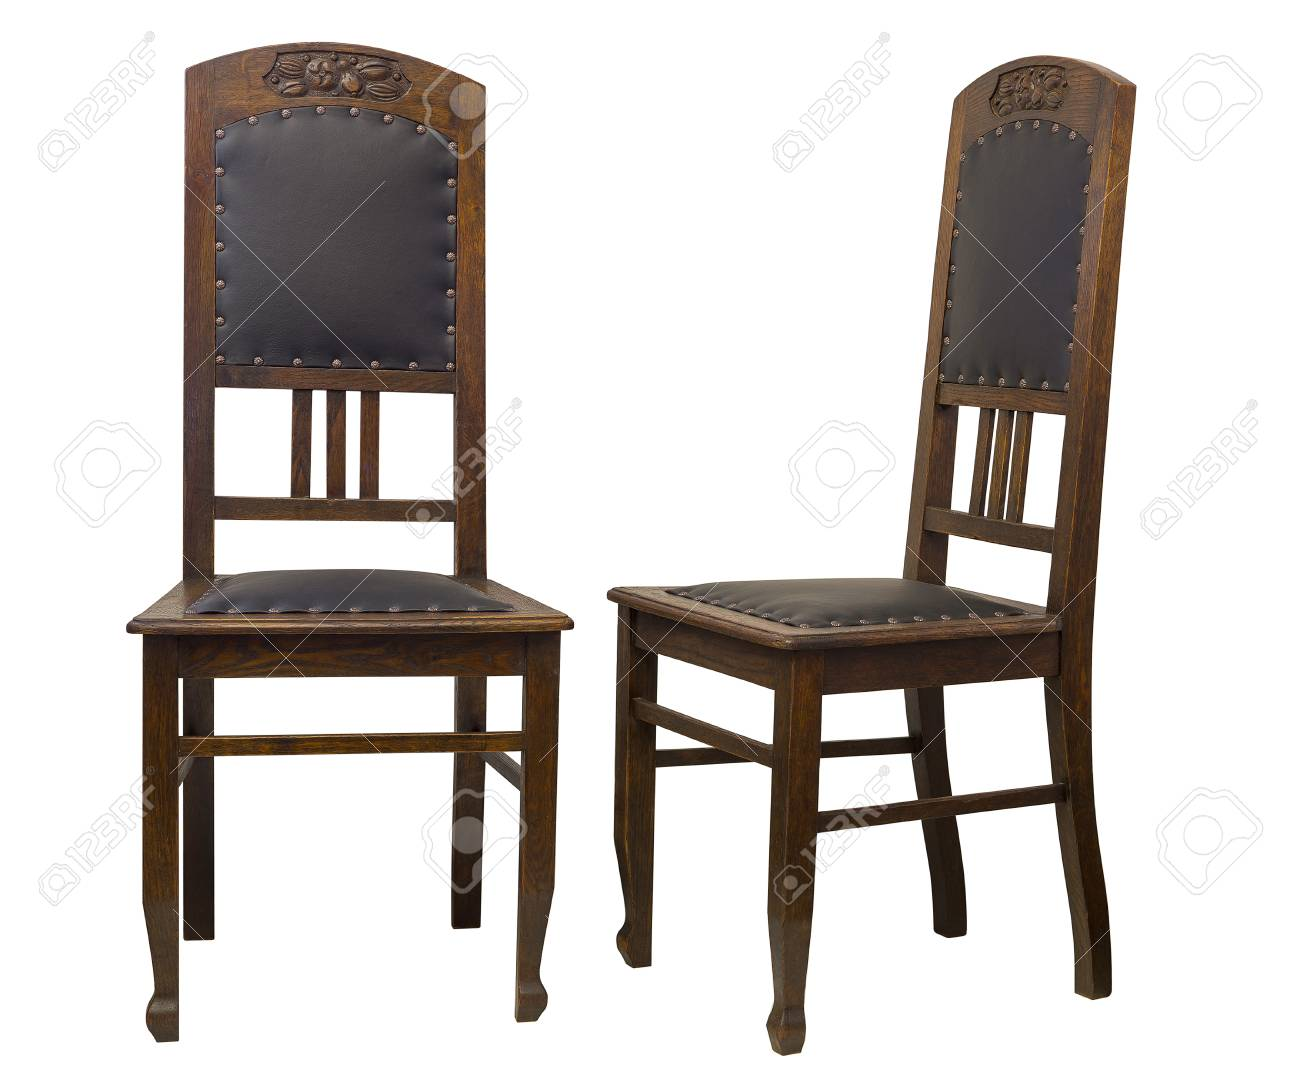 Stock Photo   Vintage Oak Chairs Isolated On White Background